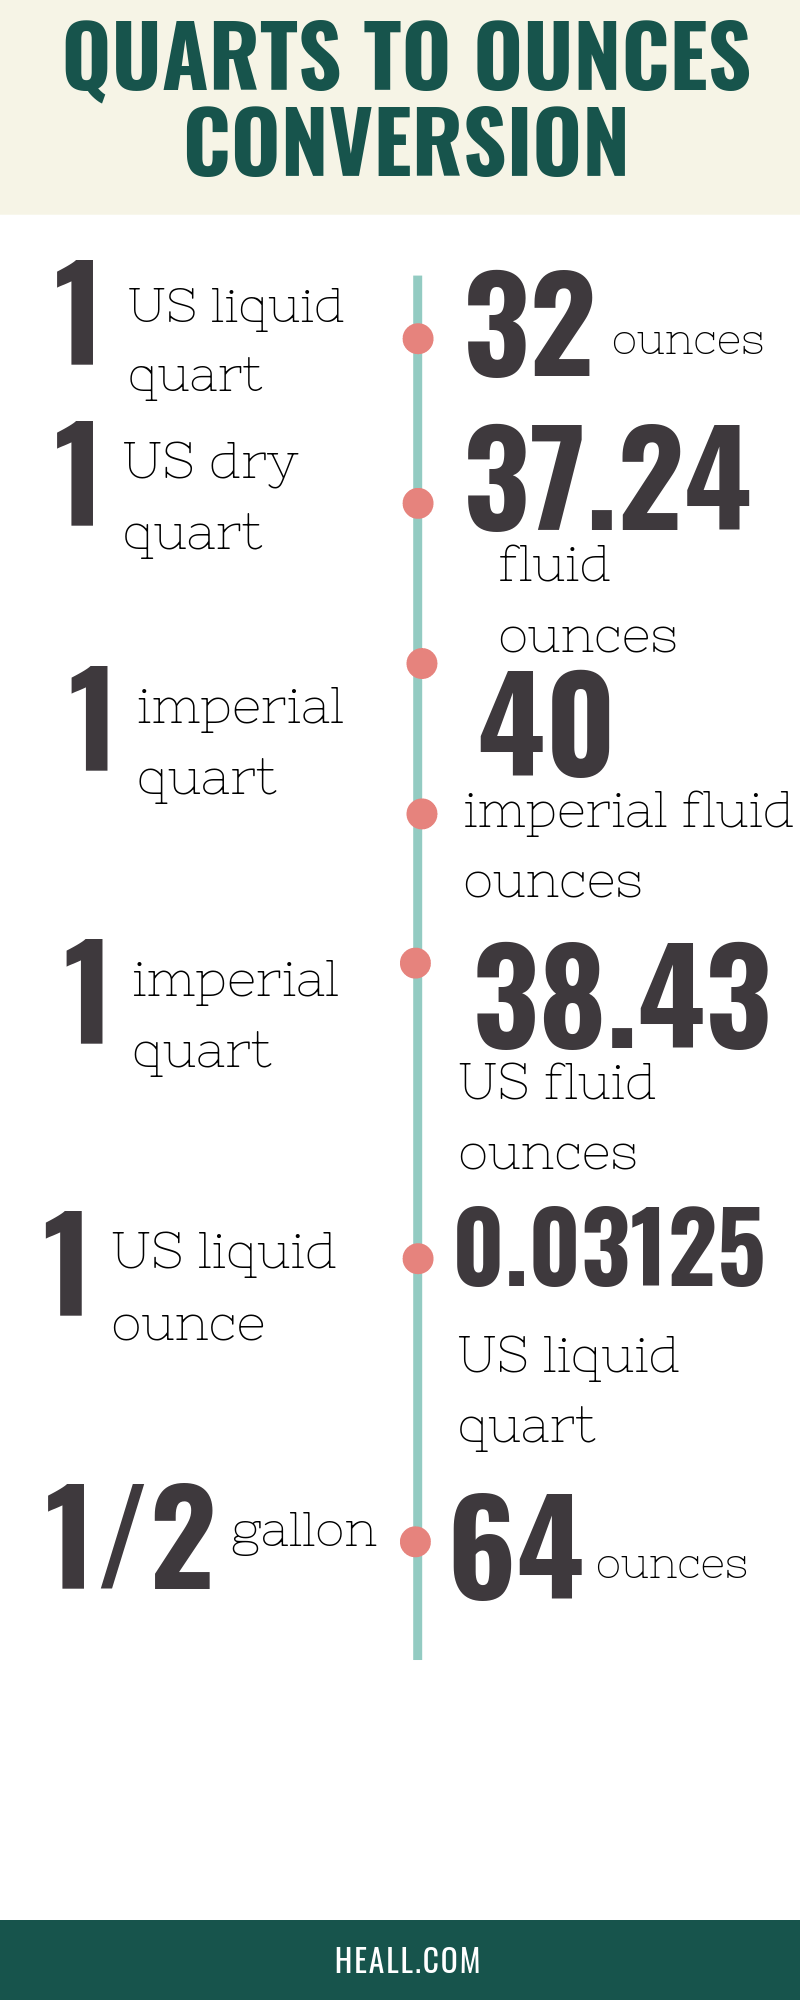 How many ounces in a gallon (quart to ounces conversion)